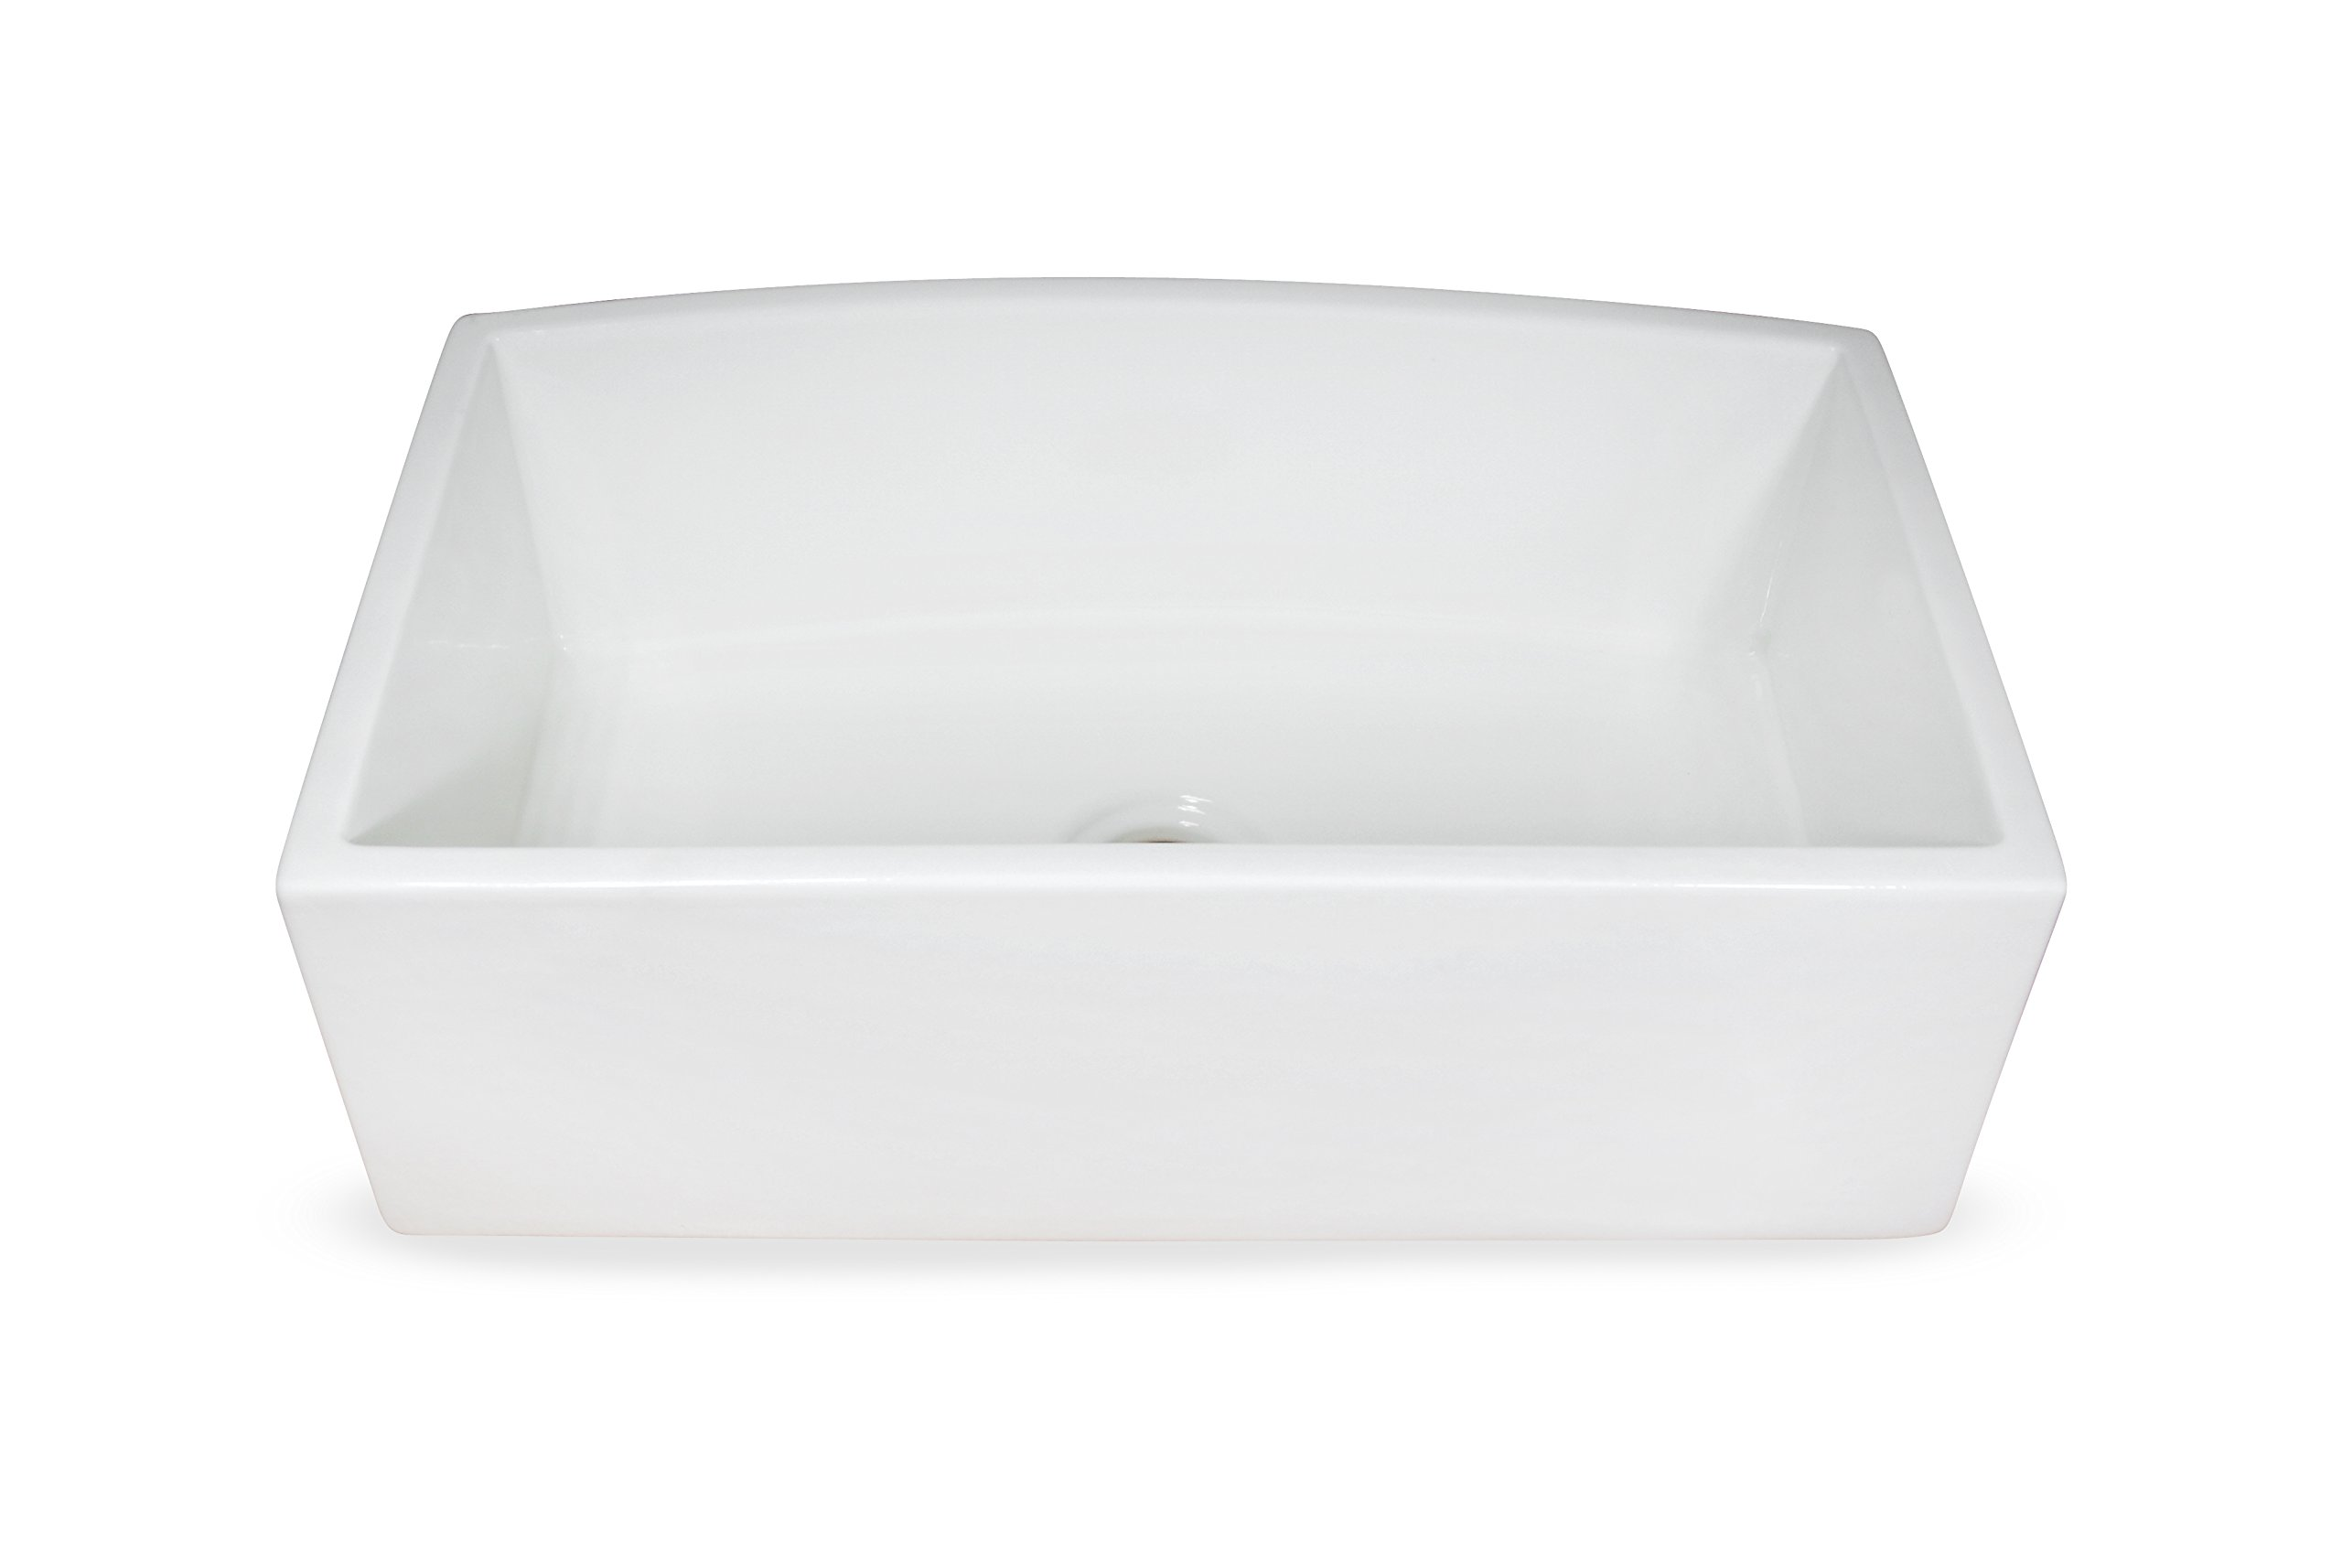 Regallo TRUE FIRECLAY Reversible 30'' Apron Front Sink by MOCCOA, Farmhouse Kitchen Sink White … by MOCCOA (Image #4)